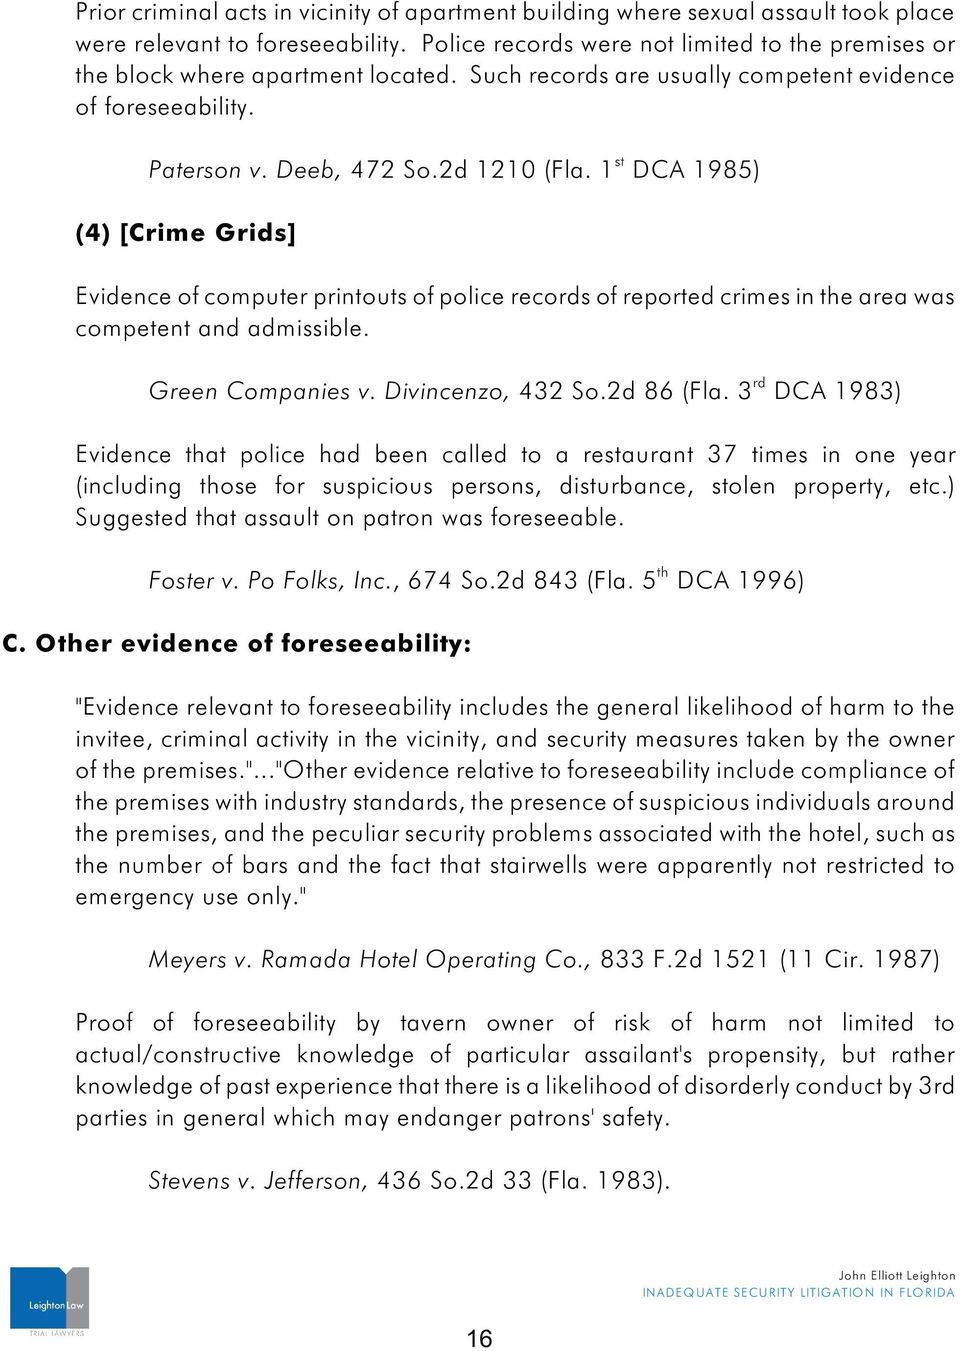 1 DCA 1985) (4) [Crime Grids] Evidence of computer printouts of police recos of reported crimes in e area was competent and admissible. Green Companies v. Divincenzo, 432 So.2d 86 (Fla.